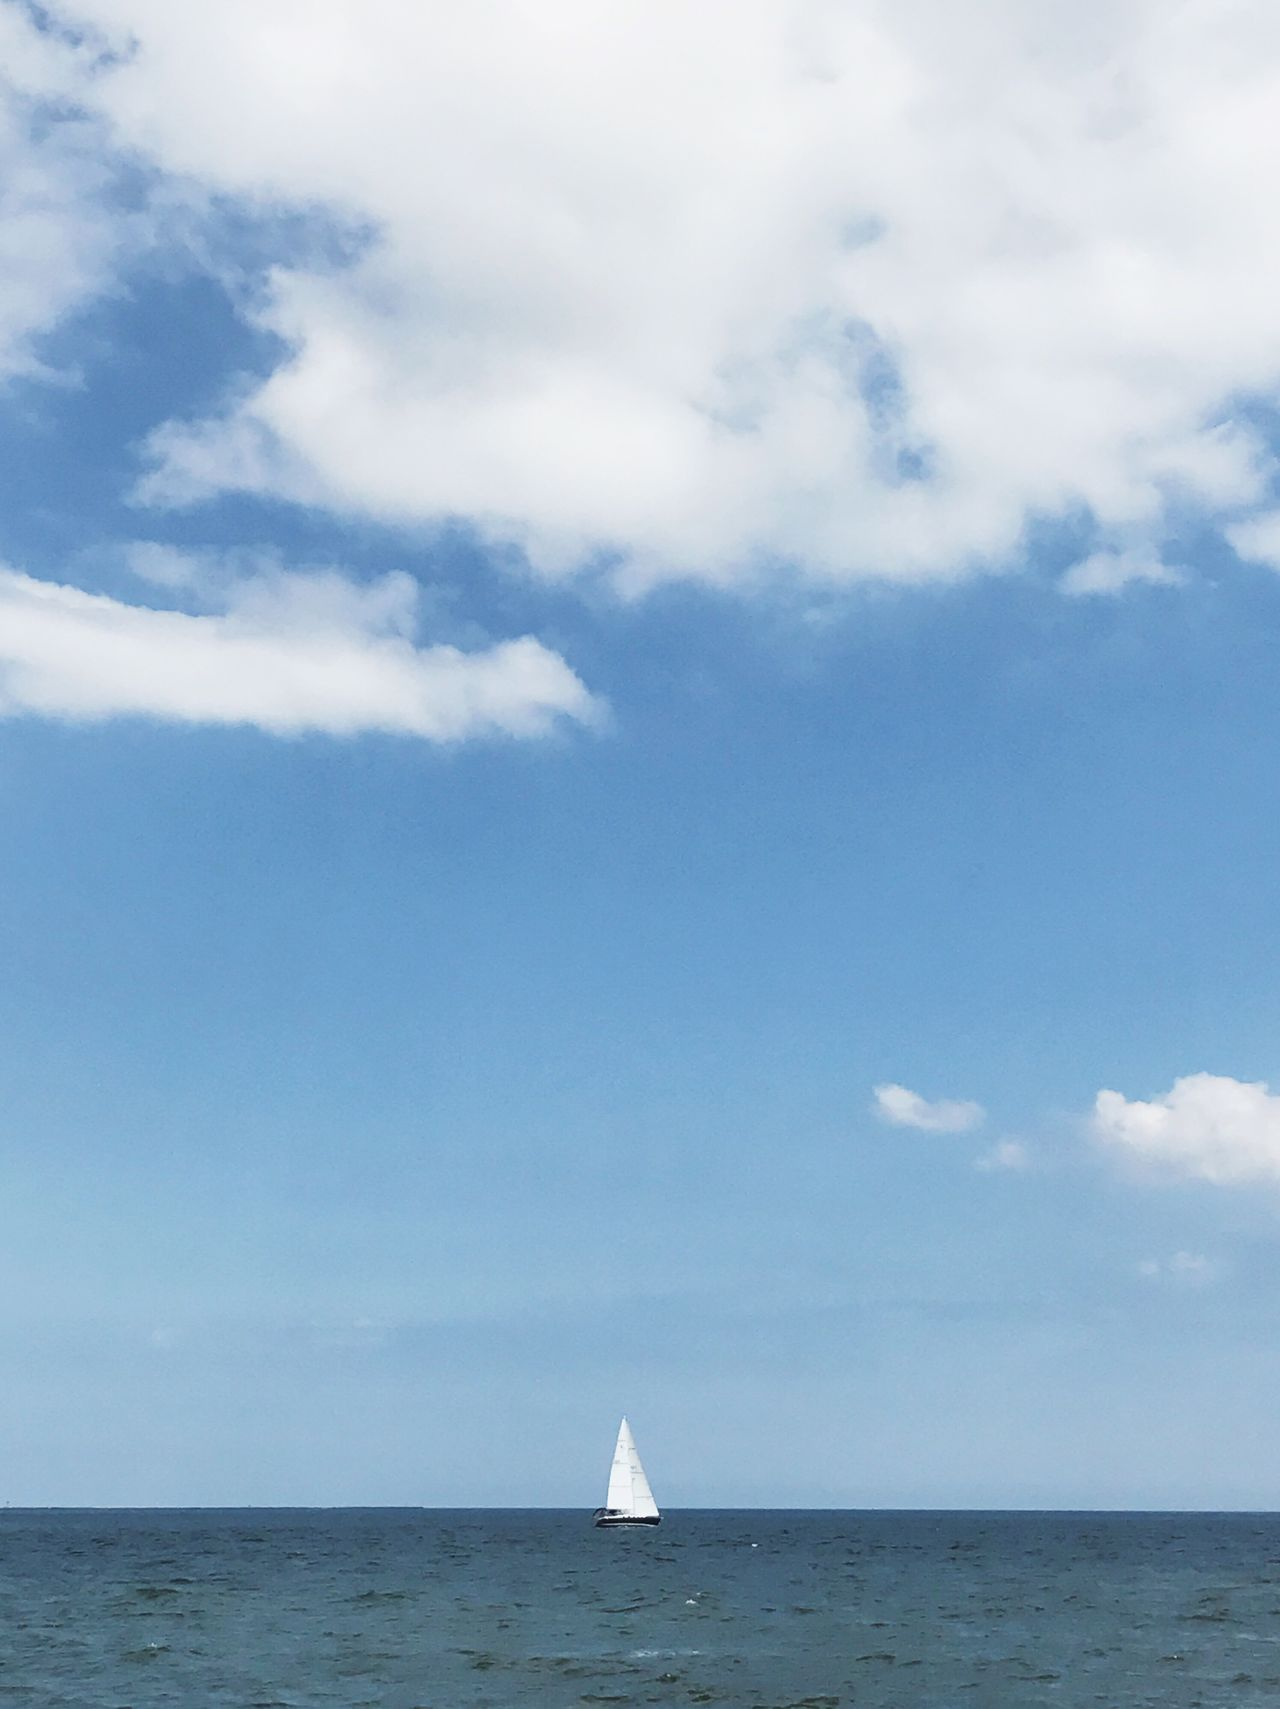 Sky Sea Cloud - Sky Horizon Over Water Water Scenics Nautical Vessel Tranquil Scene Nature Beauty In Nature Tranquility Day Transportation Sailing Waterfront Sailboat Outdoors Horizon No People